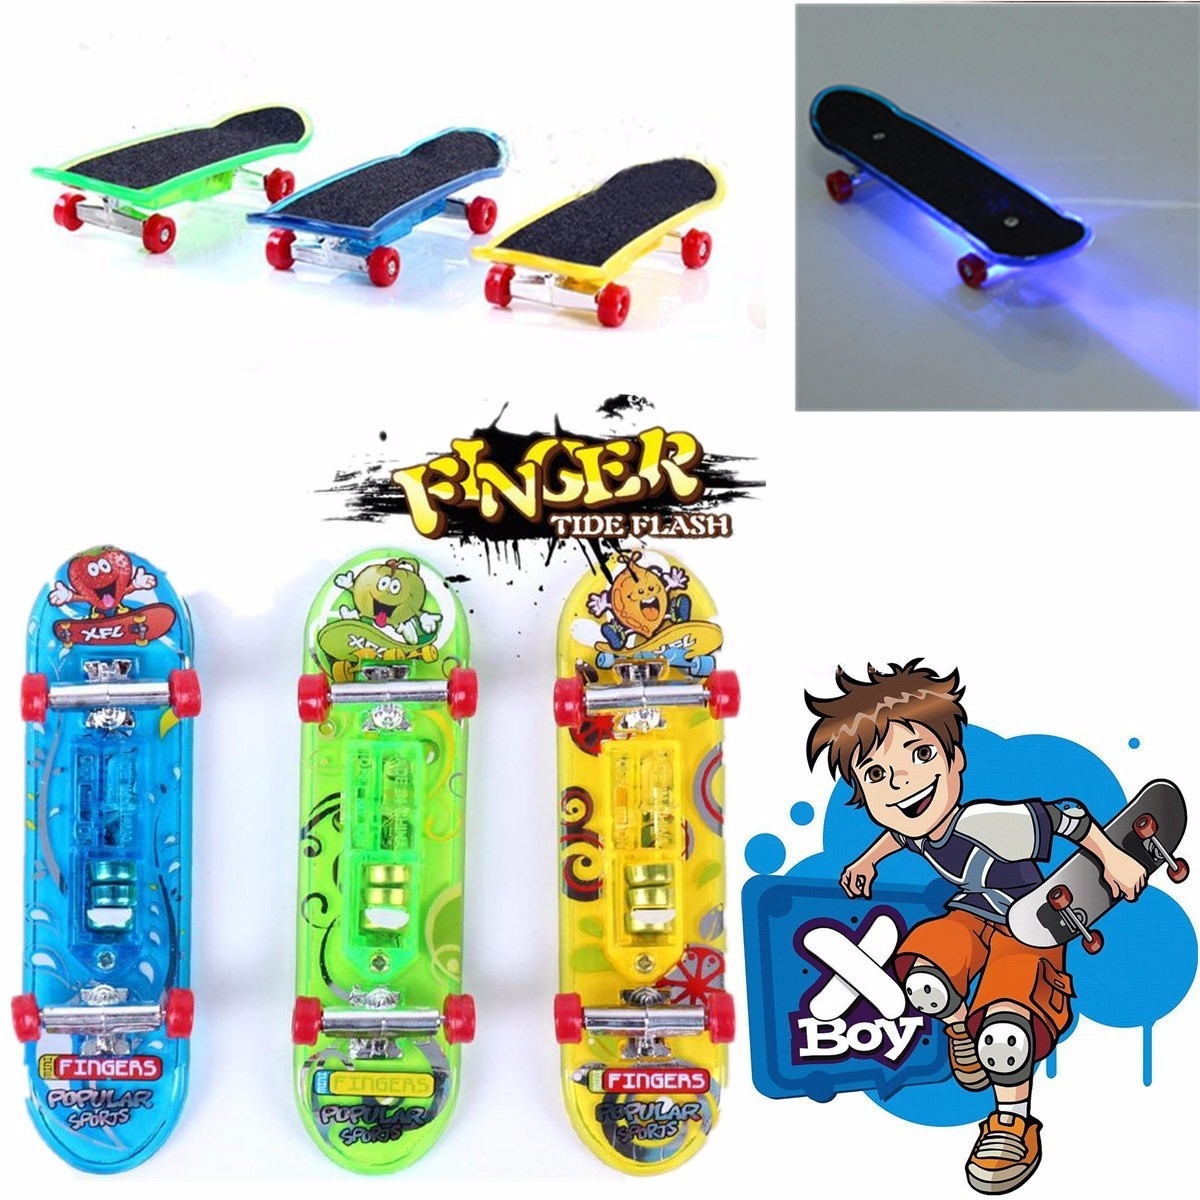 Plastic Mini LED Skateboard Toys Finger Board Plus Accessories Boy Children Gift